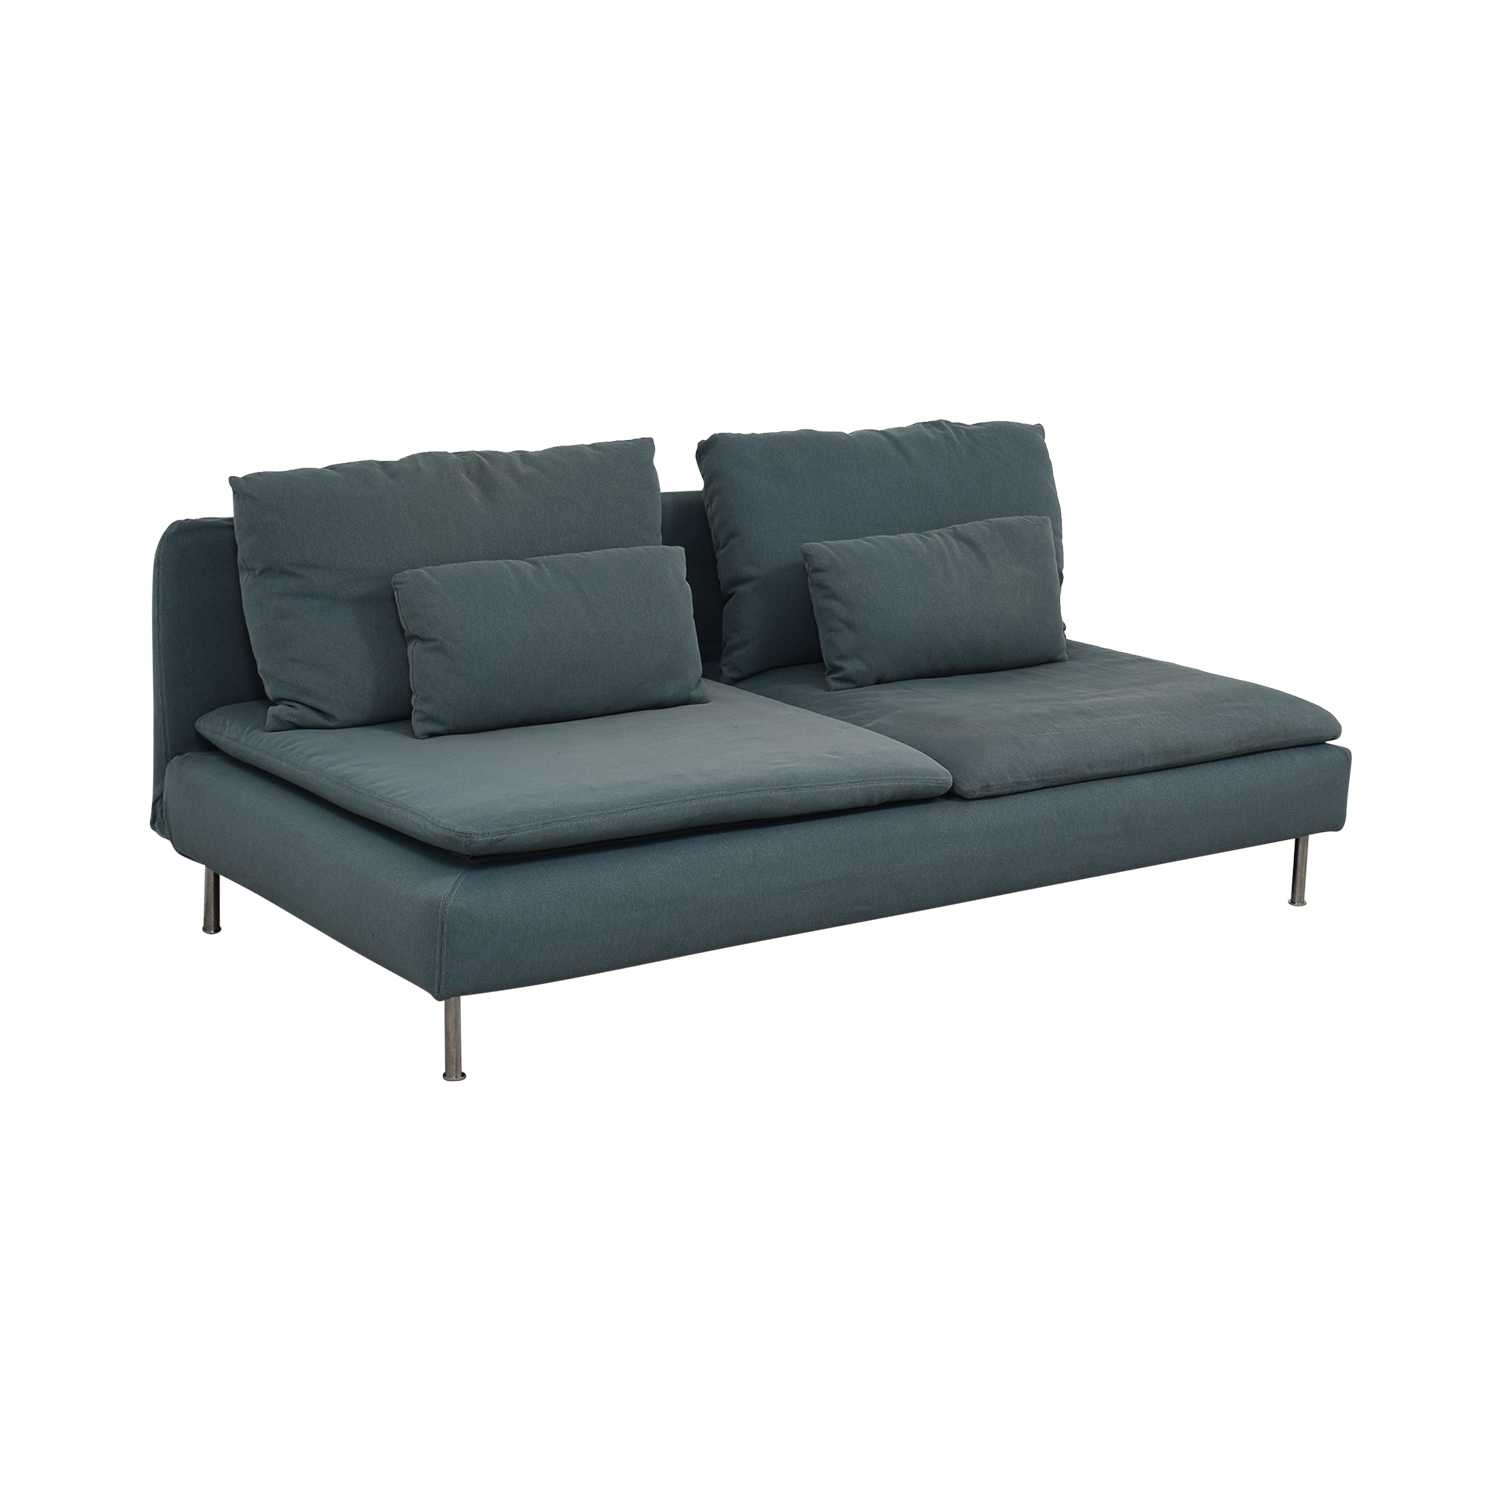 Ikea Sofa Wilj Armless Loveseat Ikea Arm Designs